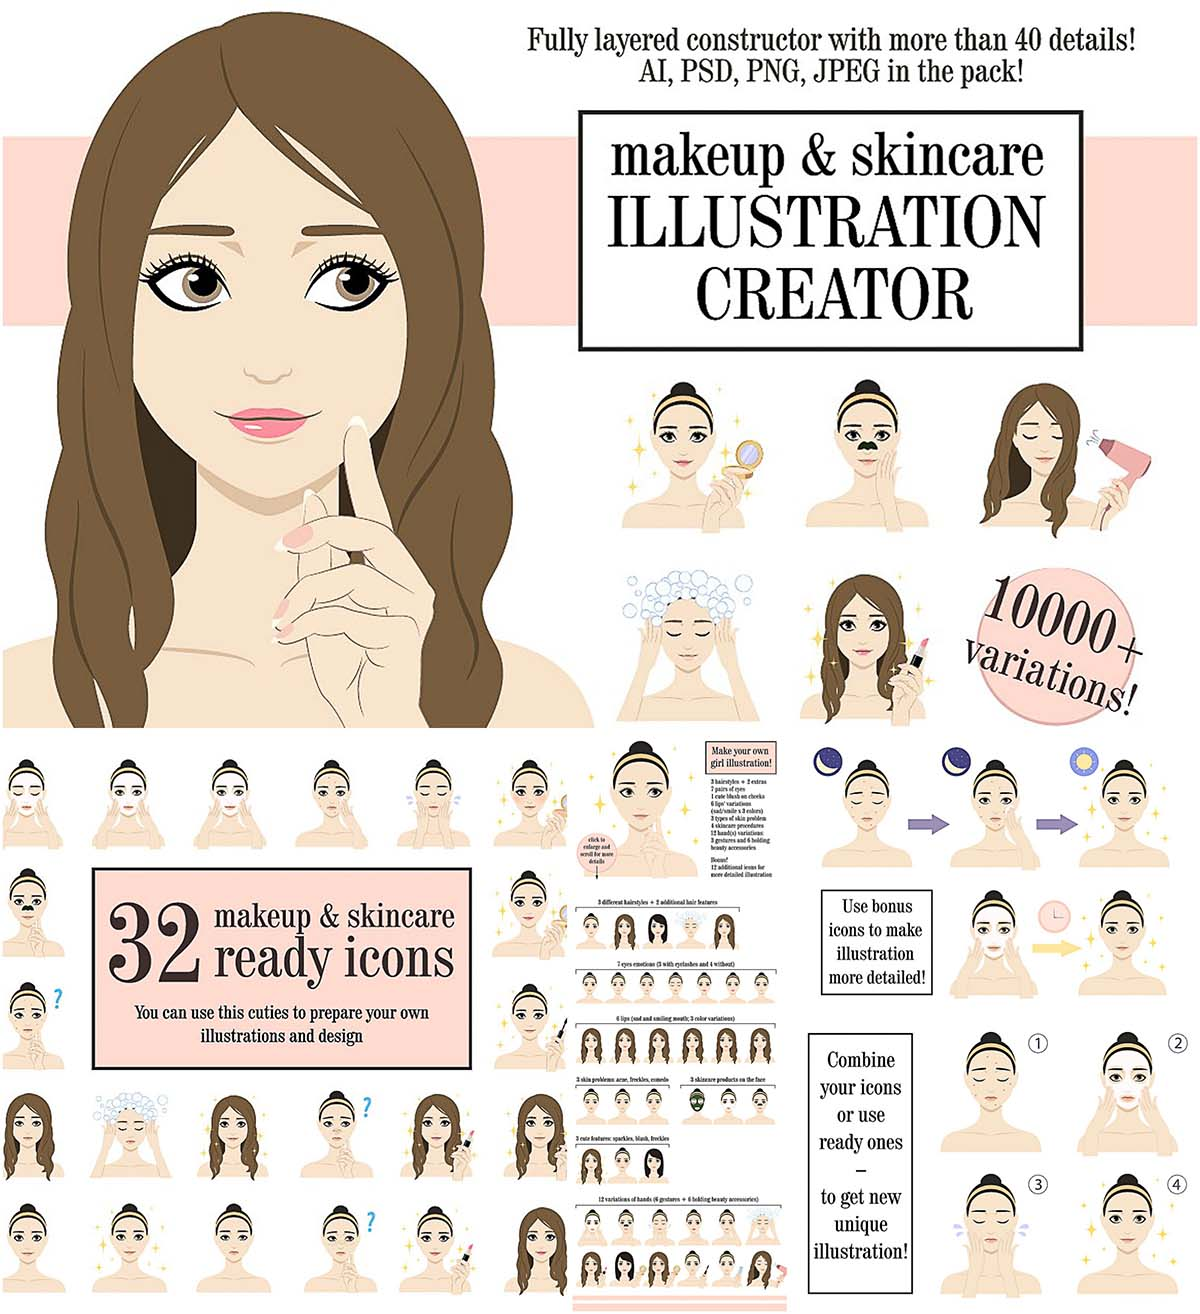 Makeup and skincare illustrations creator